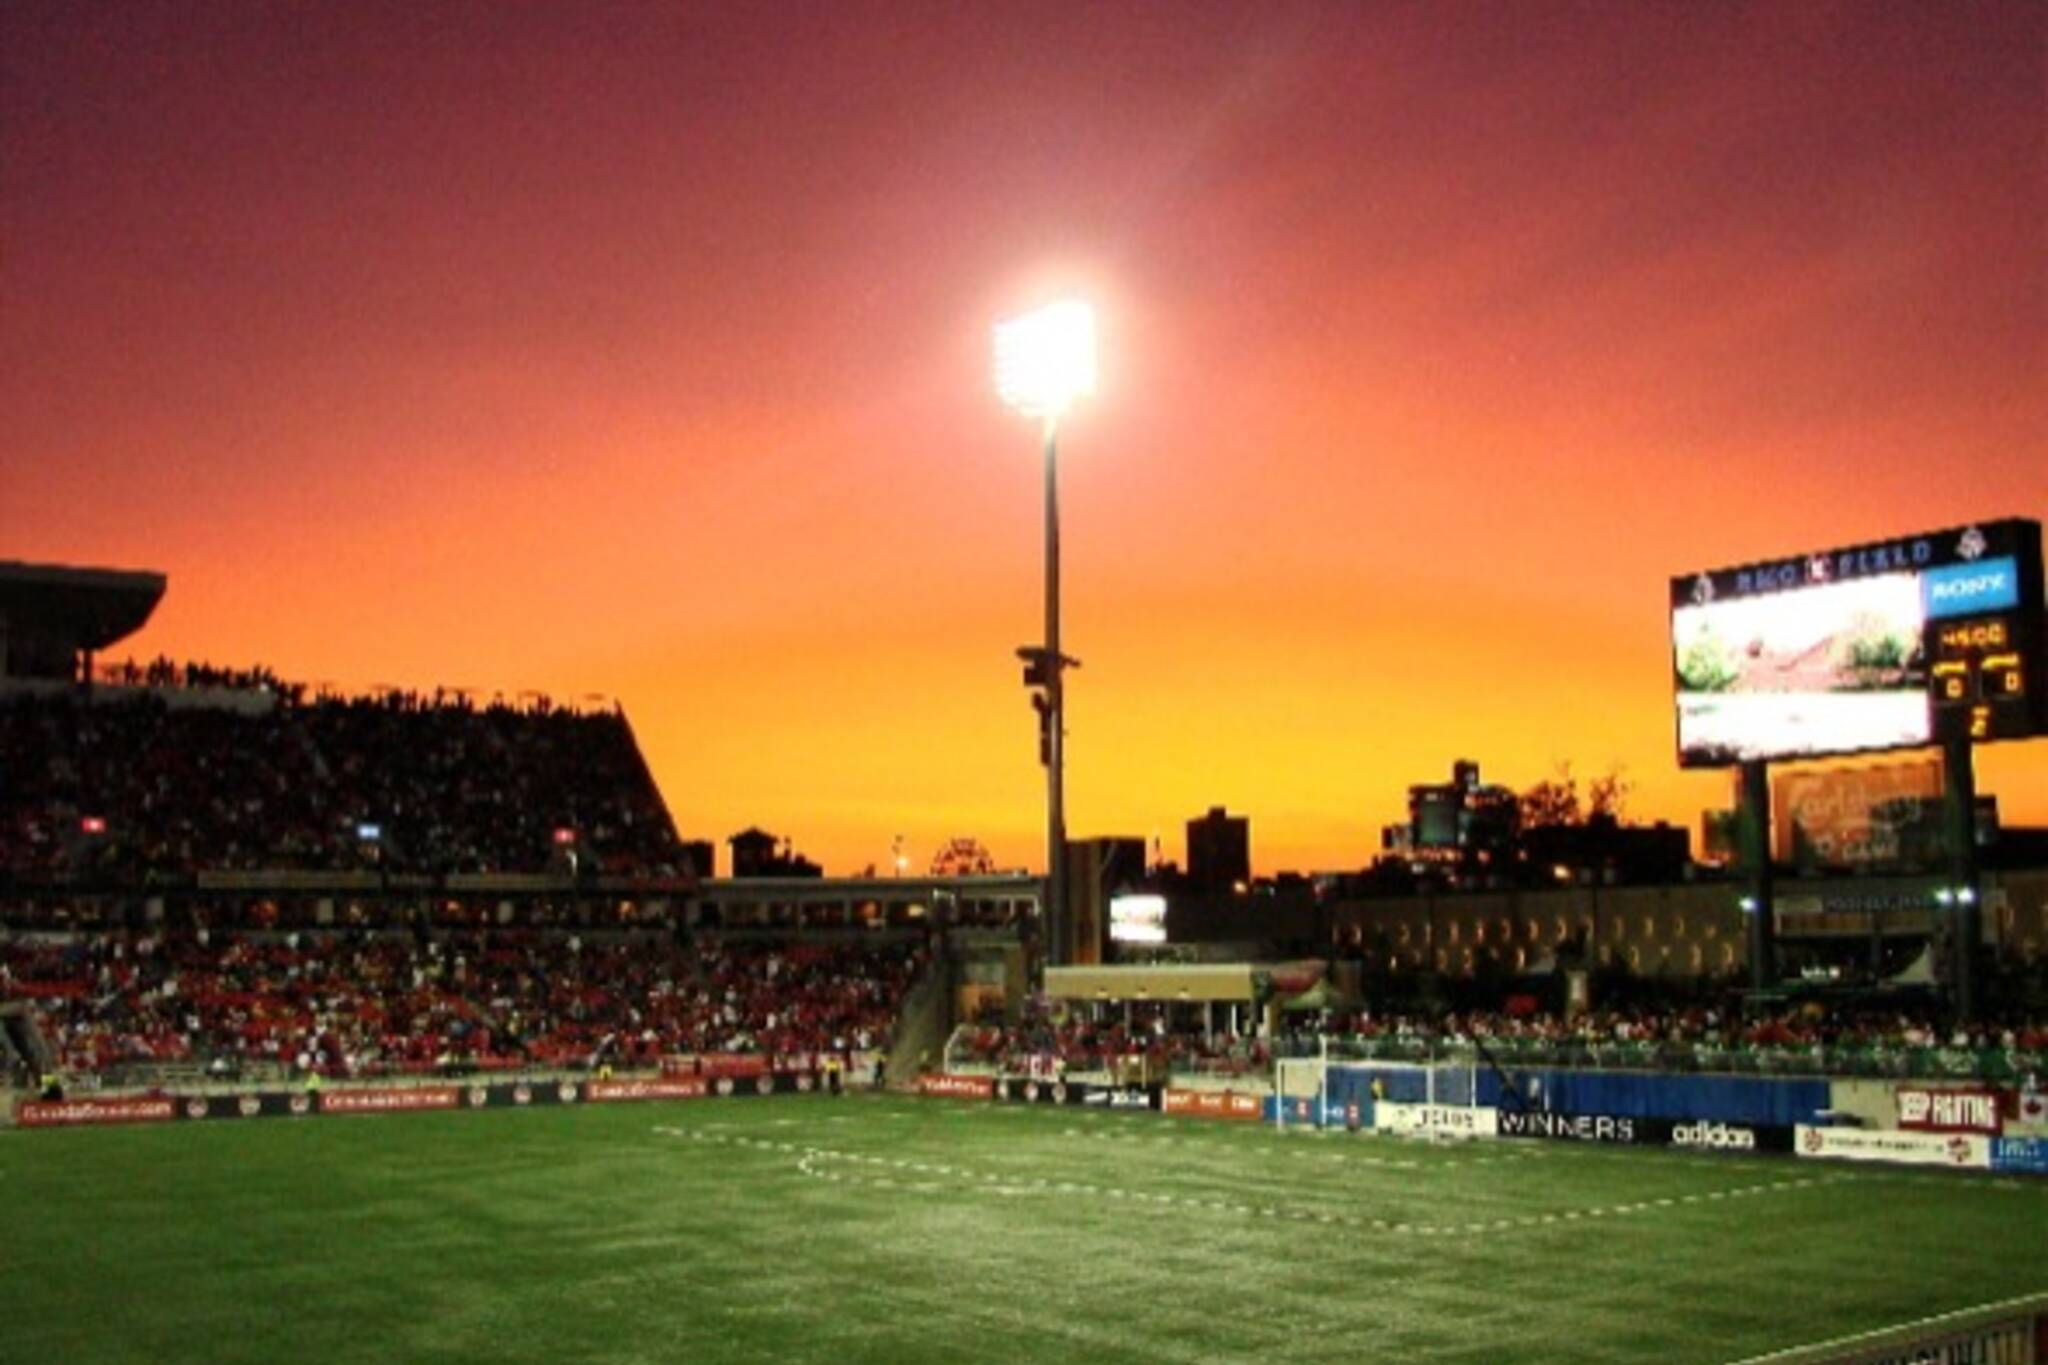 Spectacular sunset over BMO Field